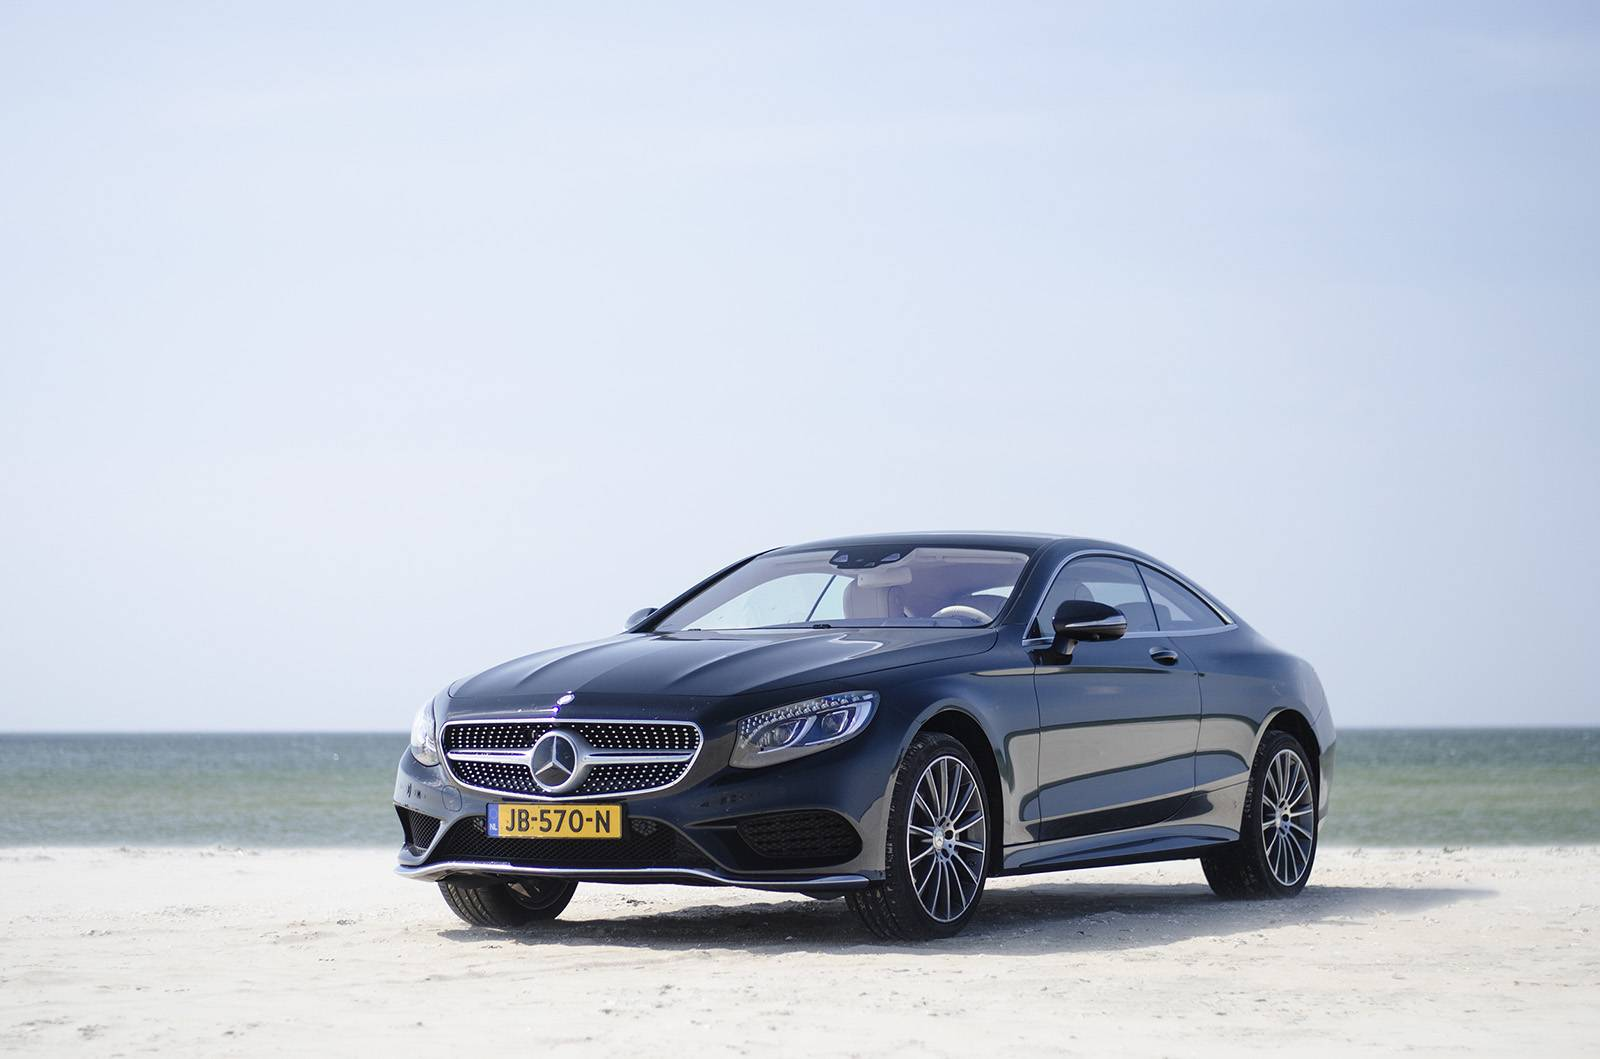 Mercedes-benz s400 photo - 6